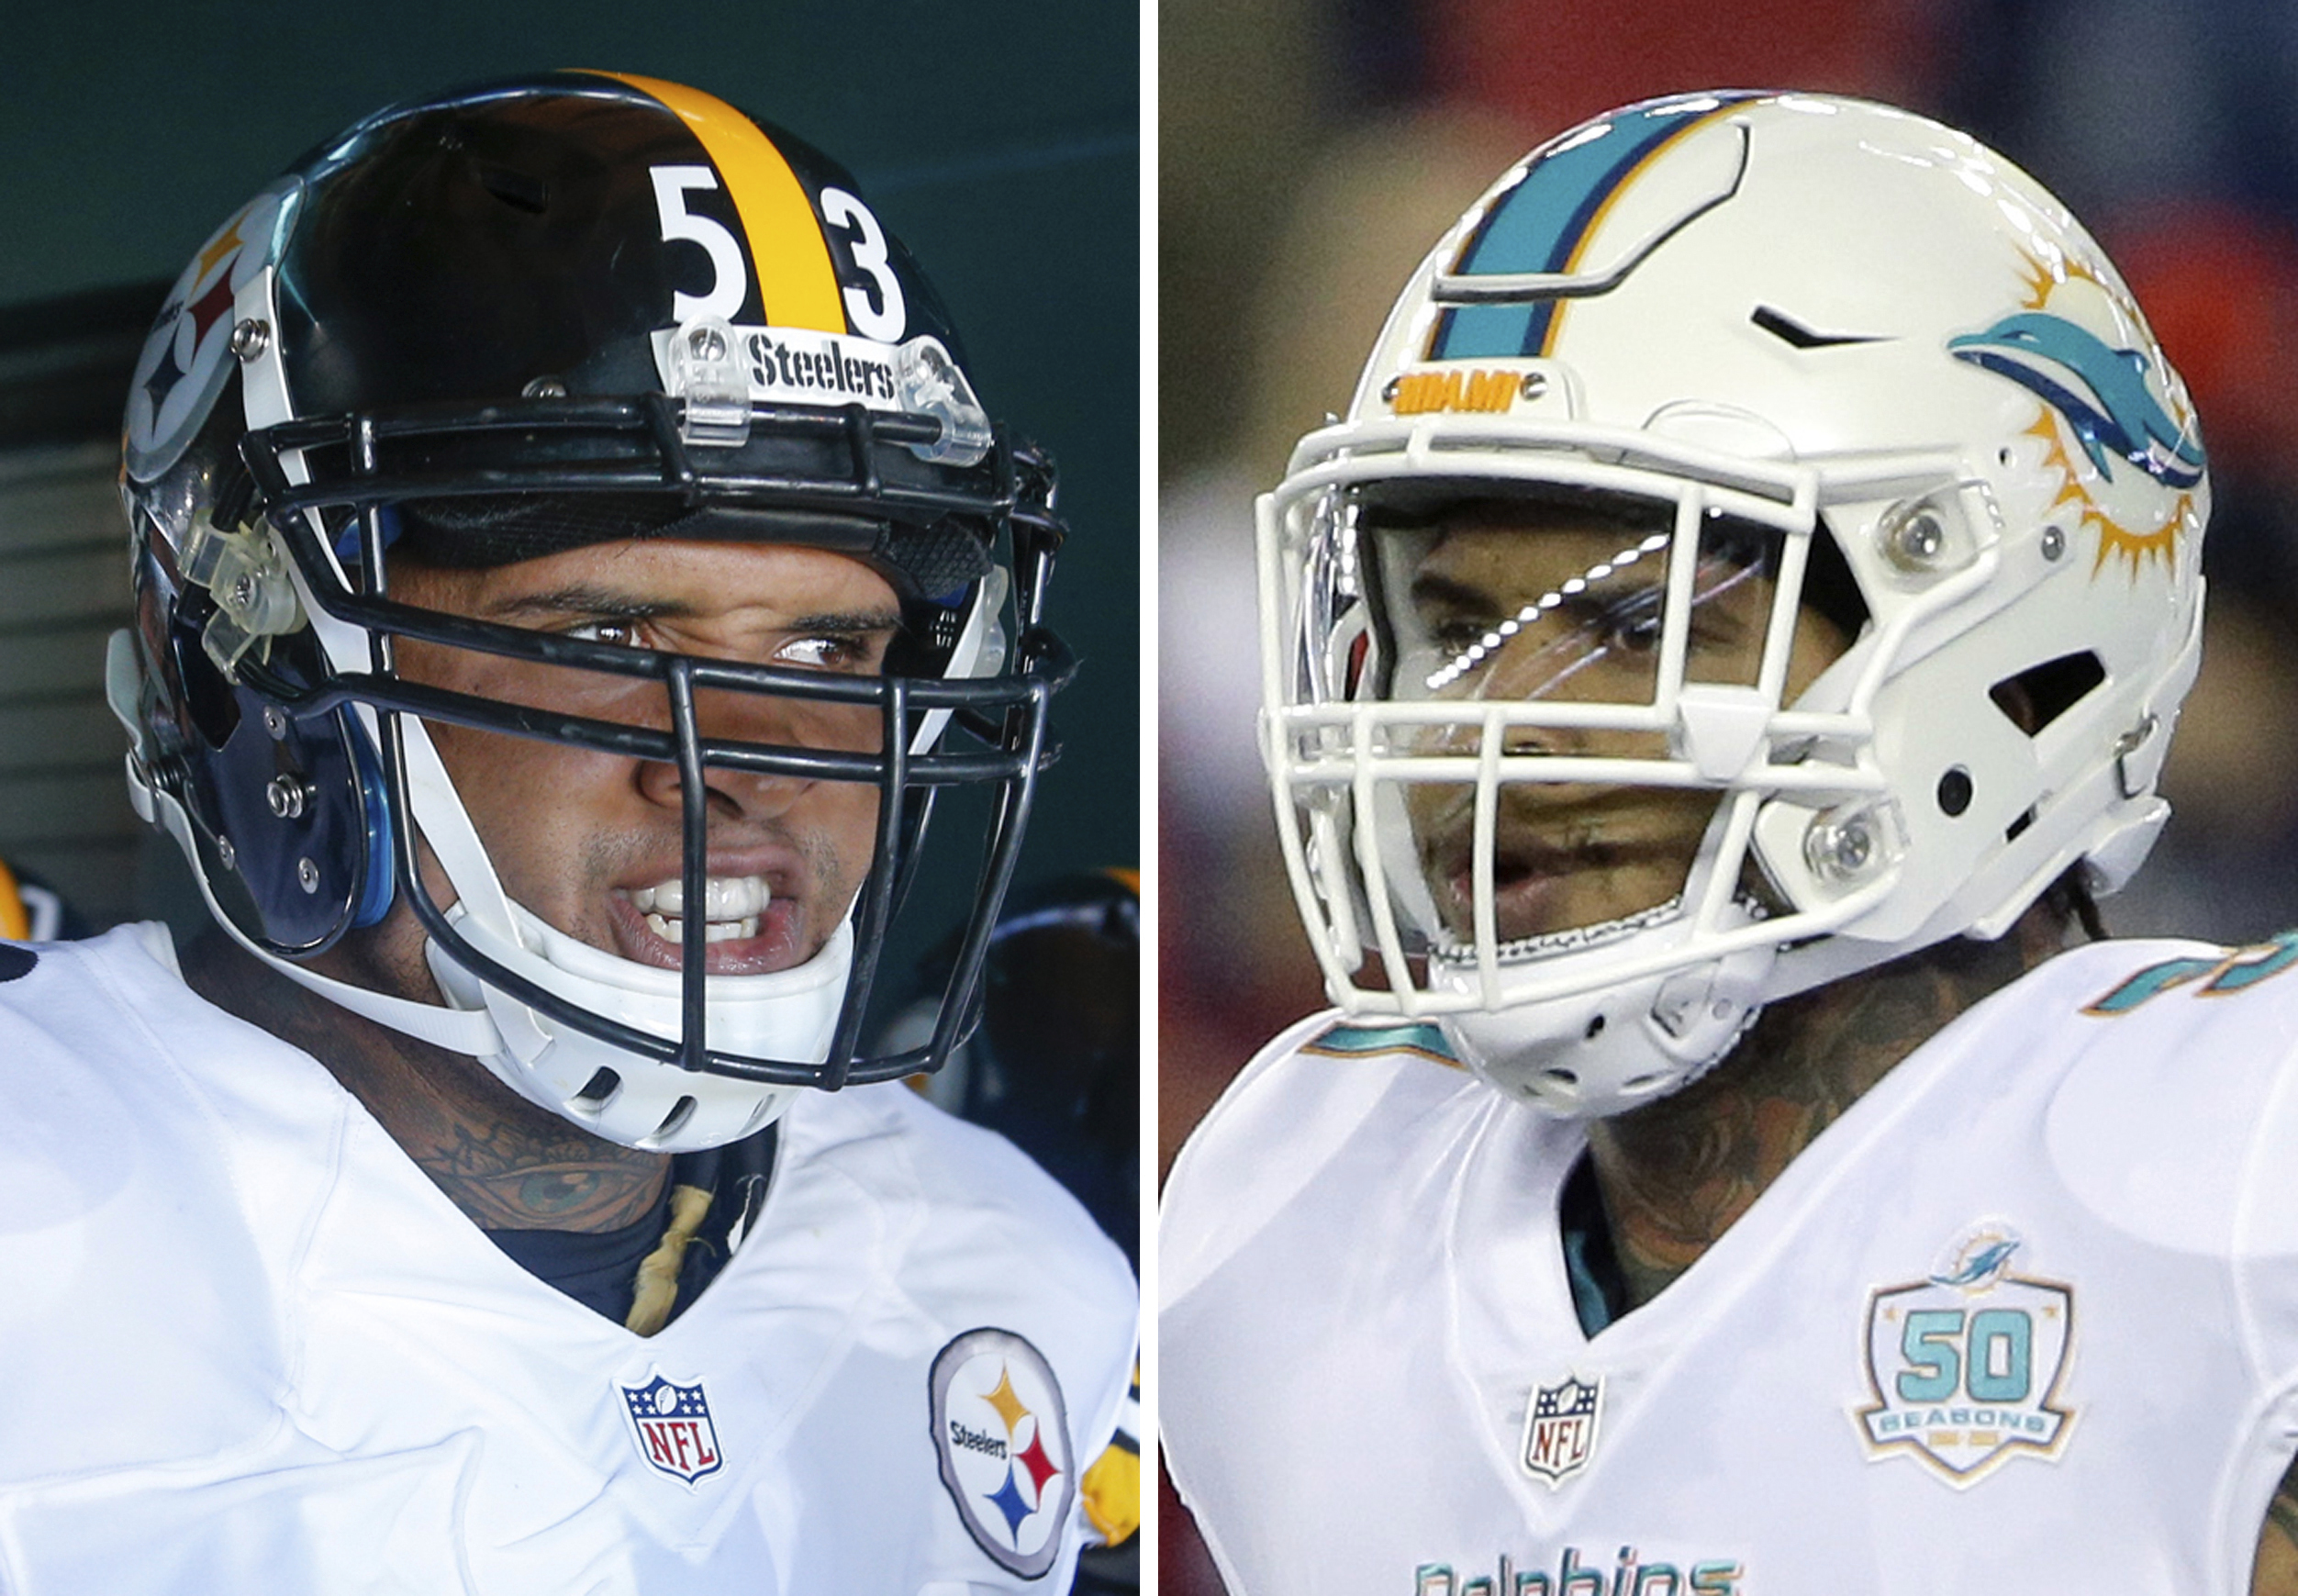 FILE - At left, in a Sept. 25, 2016, file photo, Pittsburgh Steelers center Maurkice Pouncey looks to take the field prior to the NFL football game against the Philadelphia Eagles, in Philadelphia. At right, in an Oct. 29, 2015, file photo, Miami Dolphins